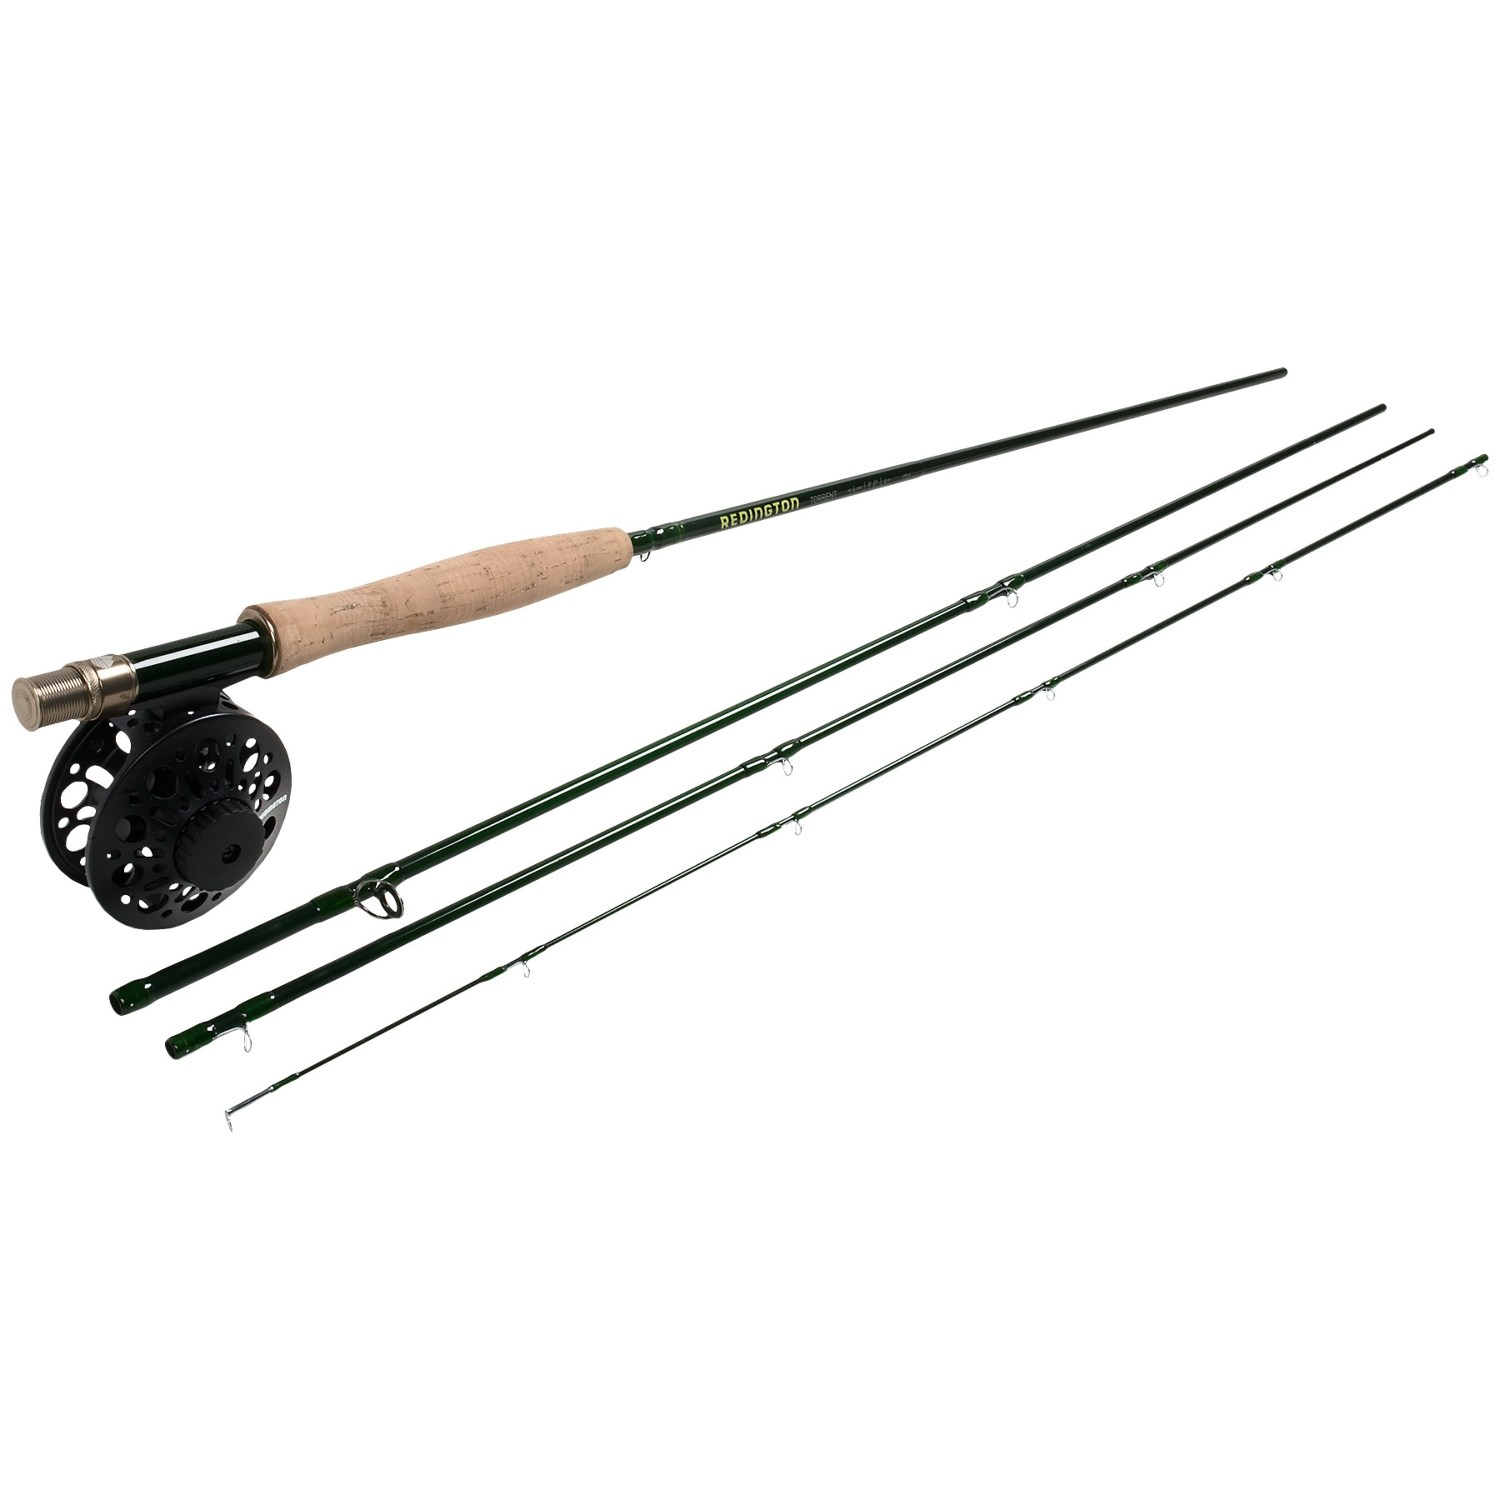 Redington torrent fly fishing combo 4 piece rod with for Fly fishing combo